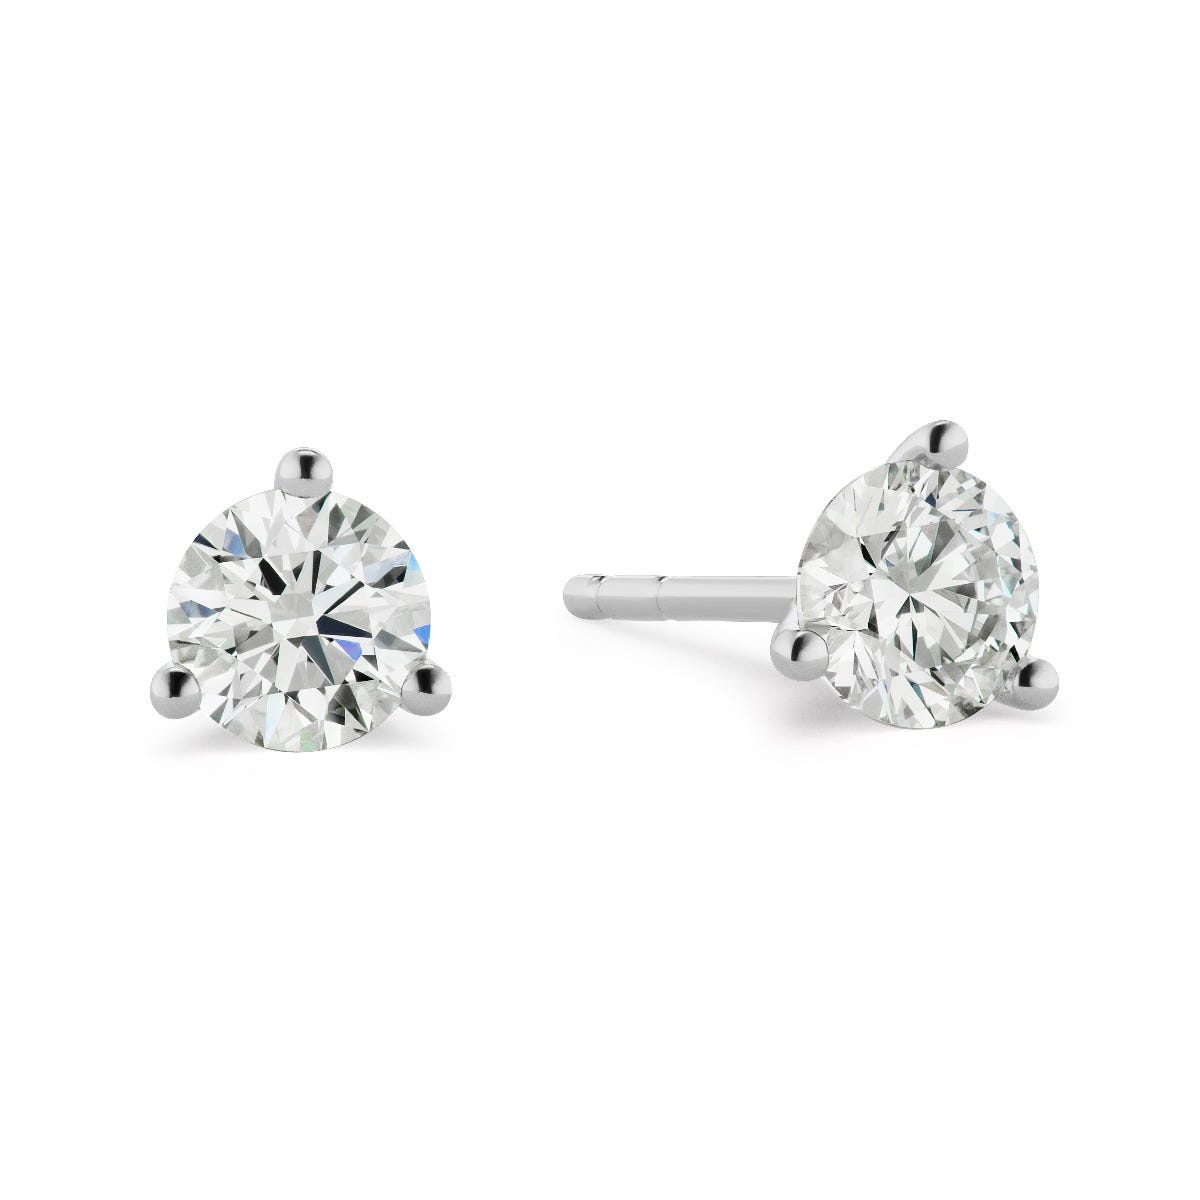 Lab-Crafted 3 Prong 2ctw. Stud Earrings in 14k White Gold